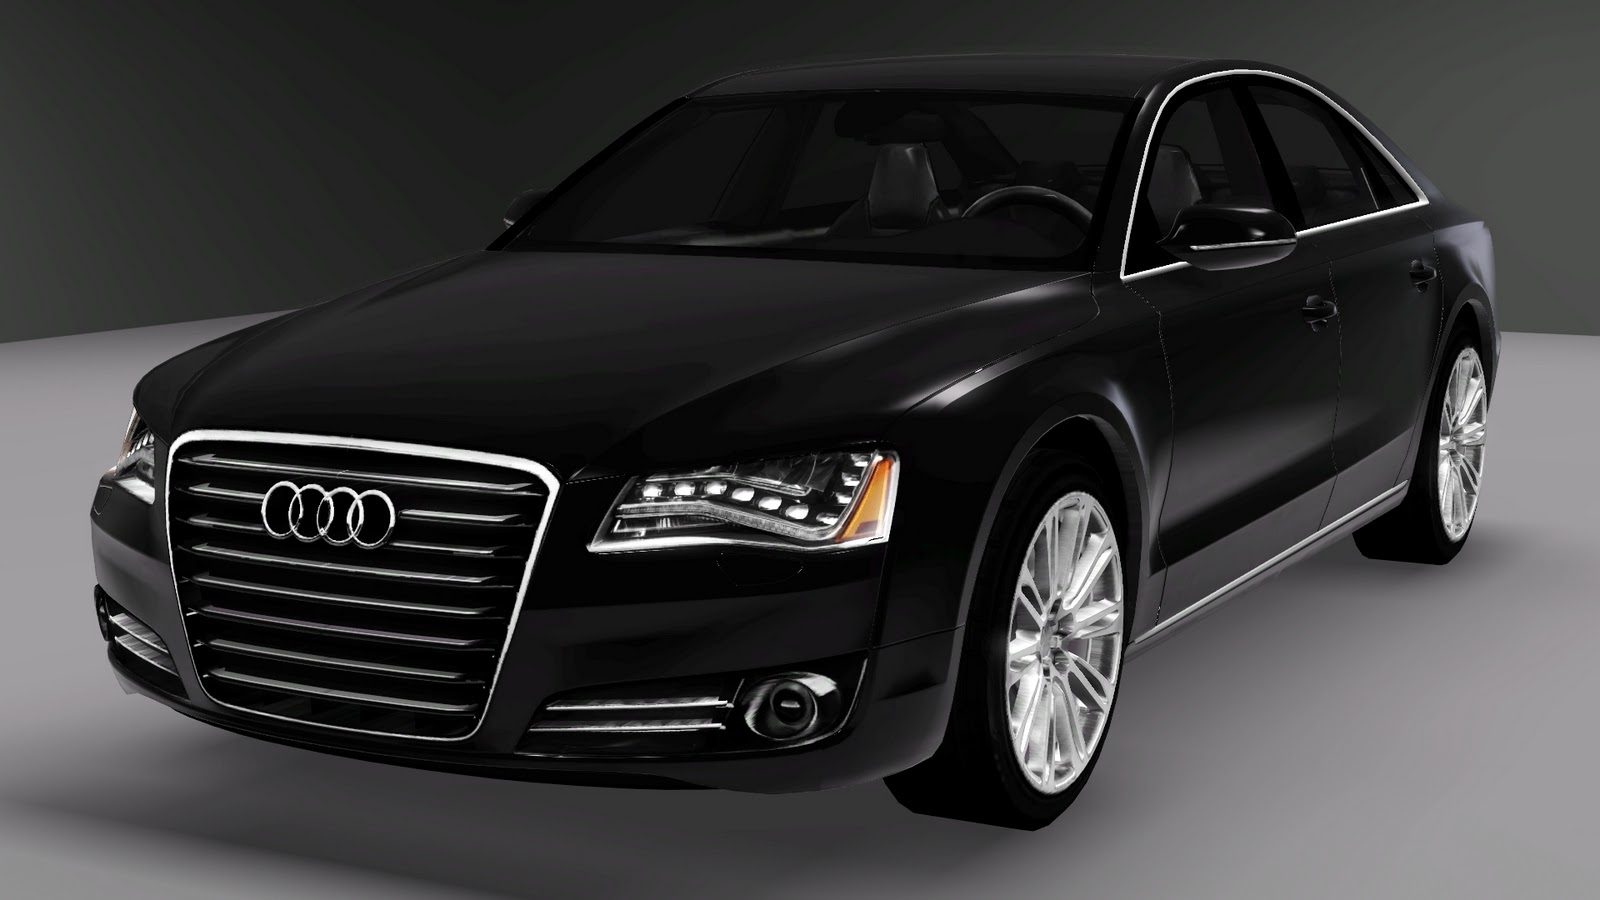 my sims 3 blog 2012 audi a8 by fresh prince. Black Bedroom Furniture Sets. Home Design Ideas